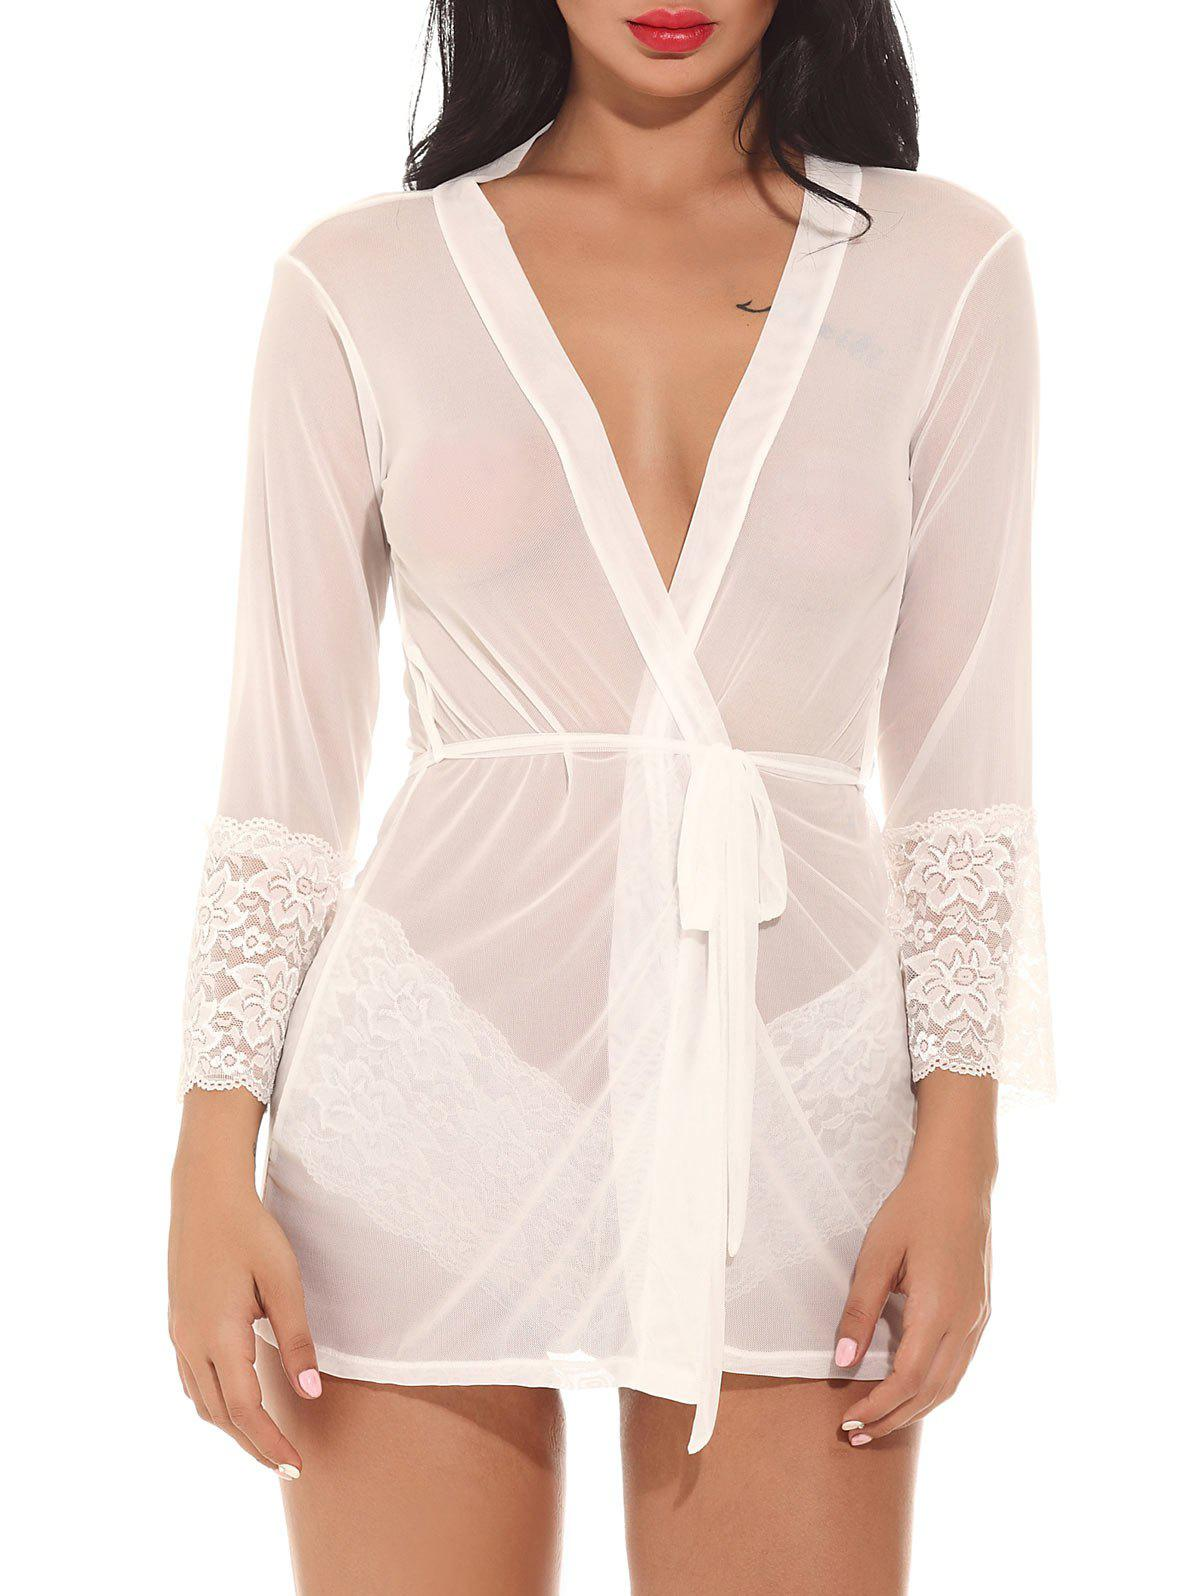 See Through Mesh Kimono Wrap Dress - WHITE L